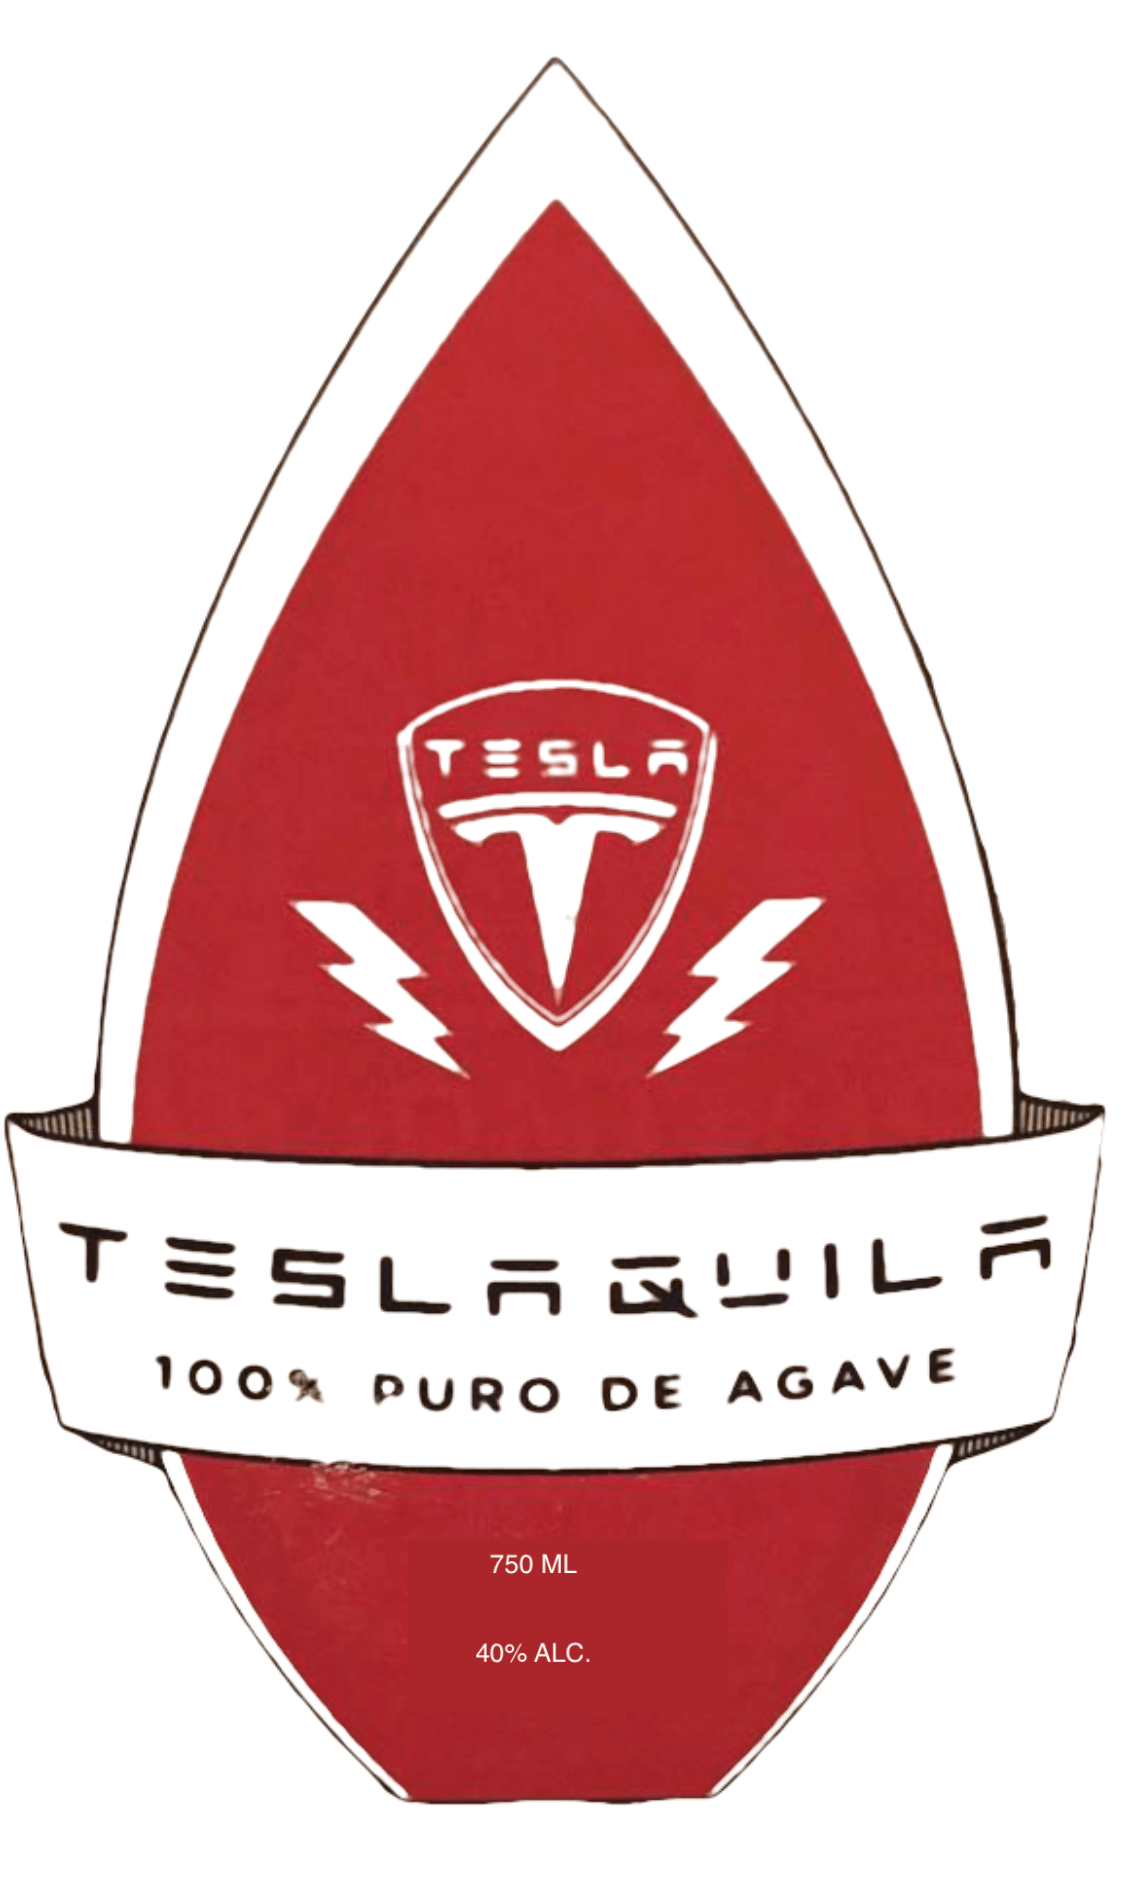 TeslaQuila Bottle Label